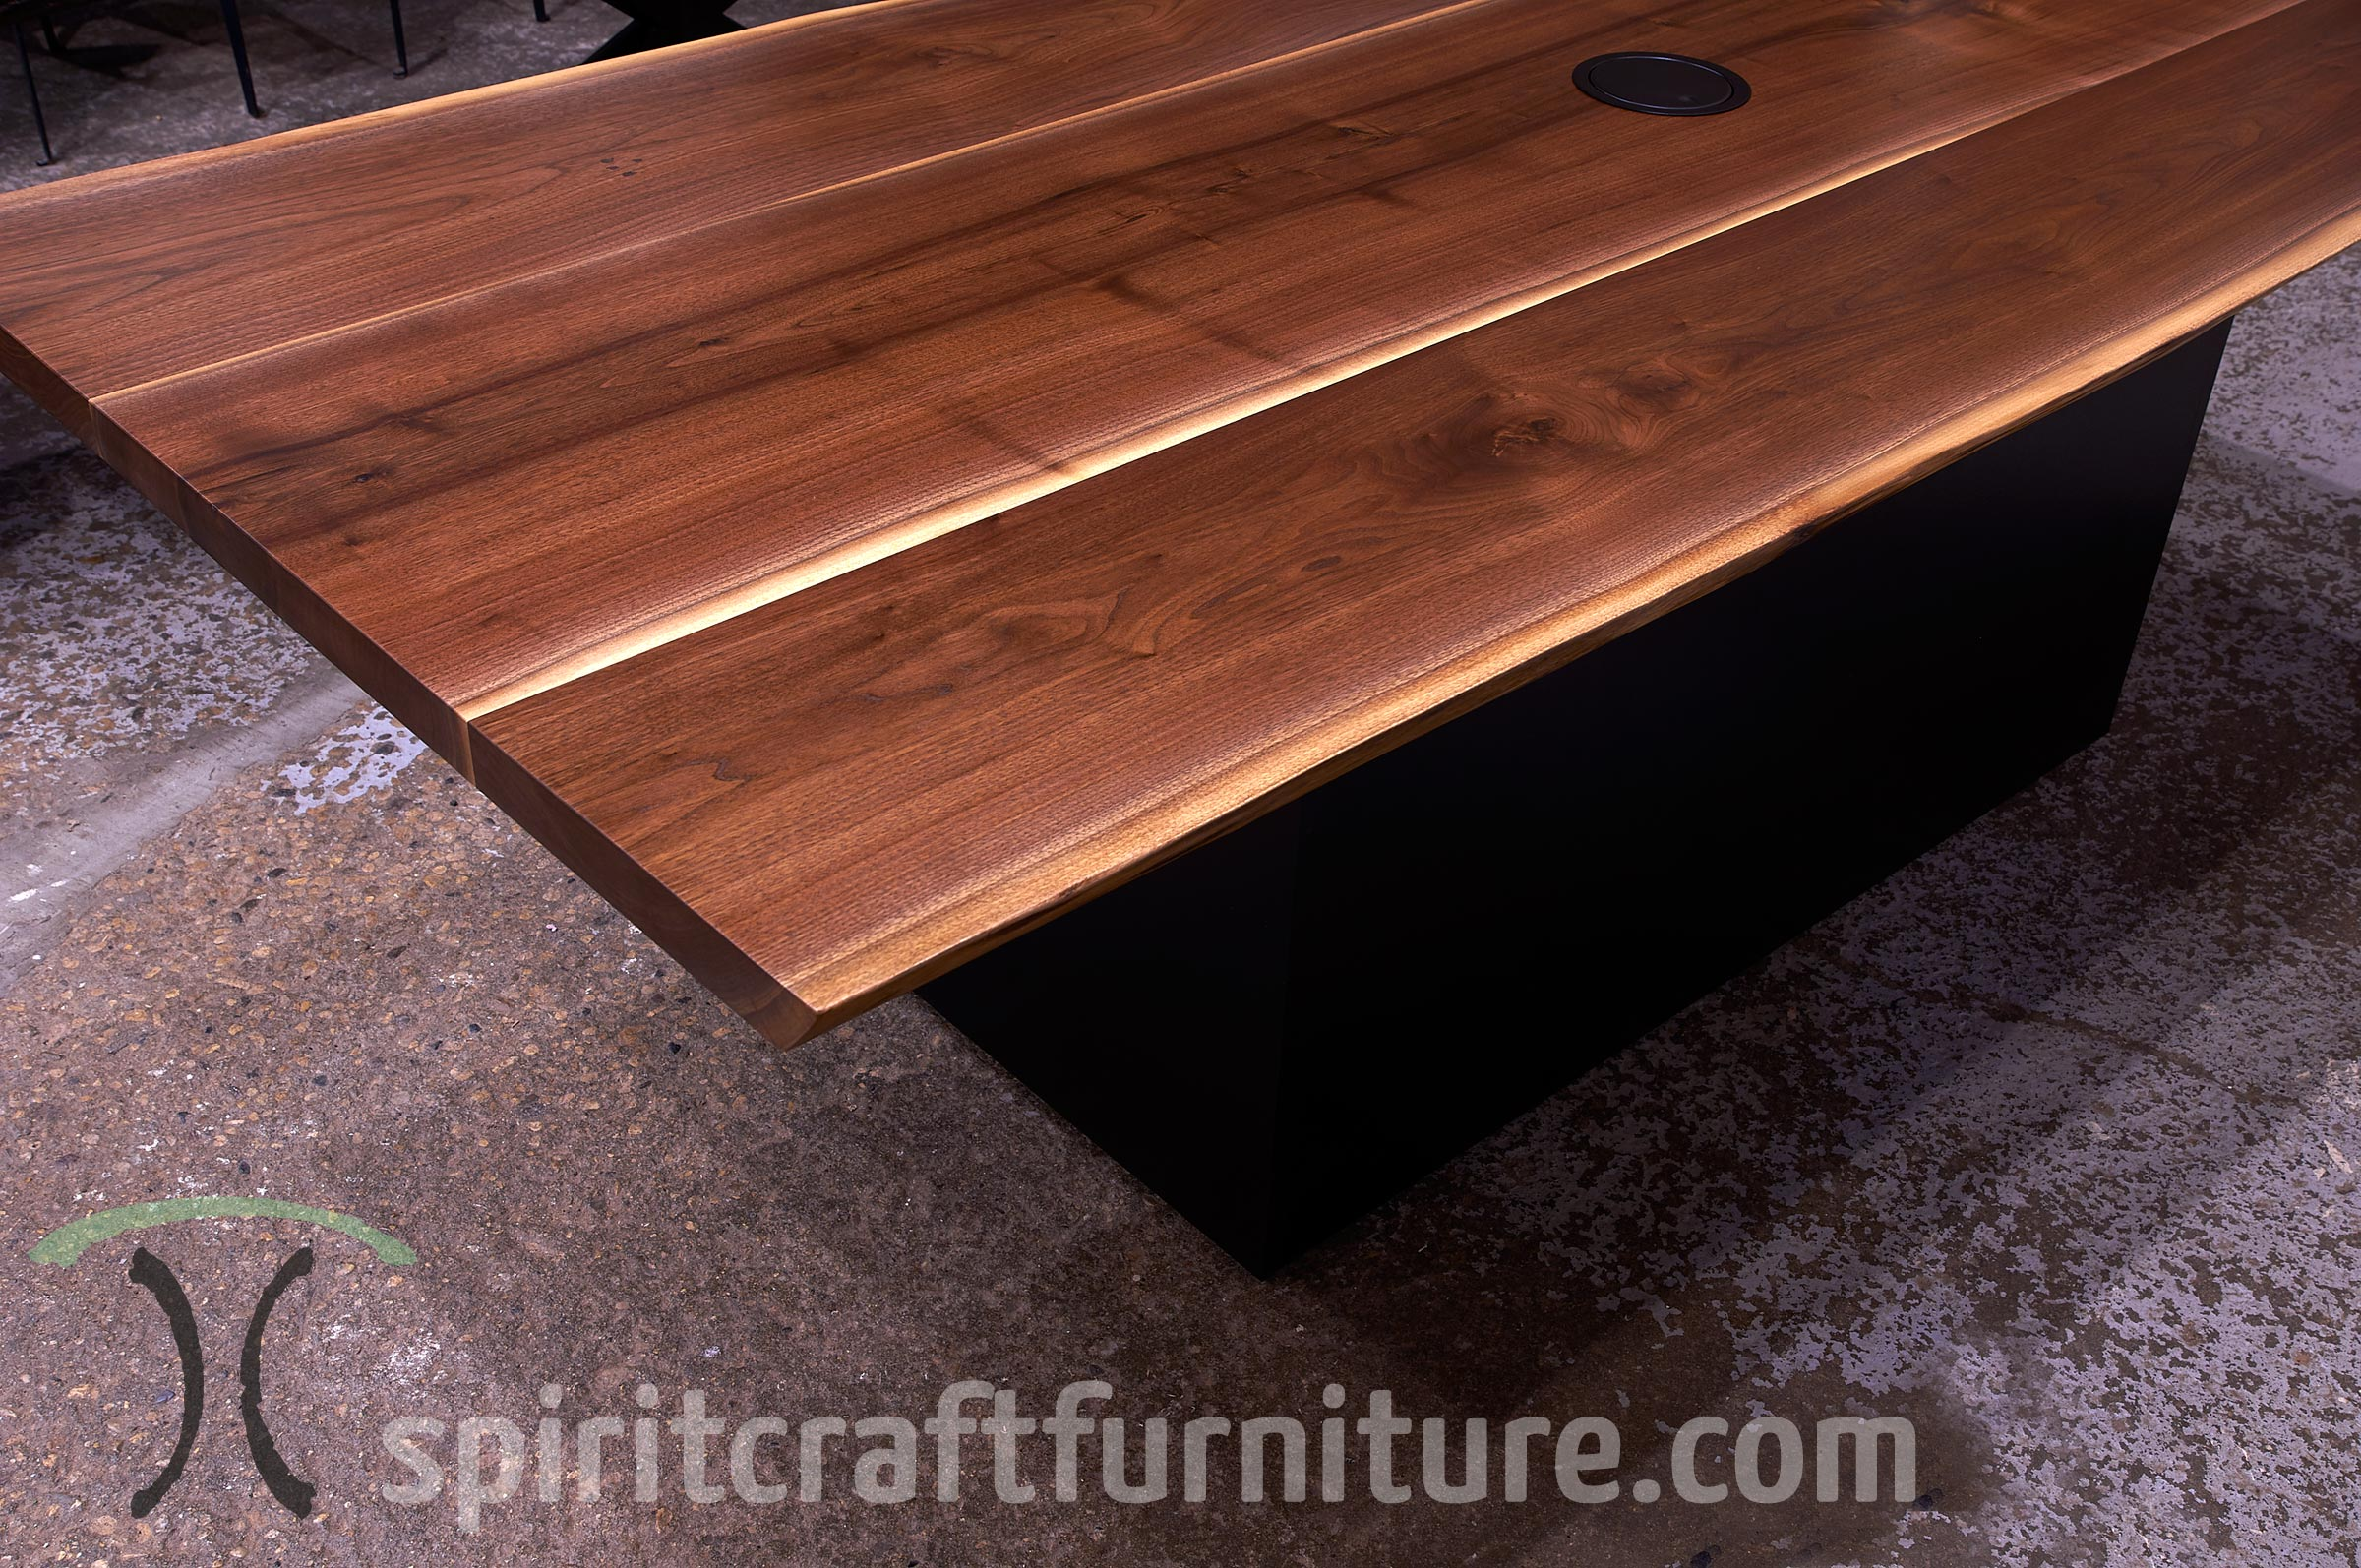 Live Edge Wood Slab Conference Room Tables And Desk Tops - Conference table grommet